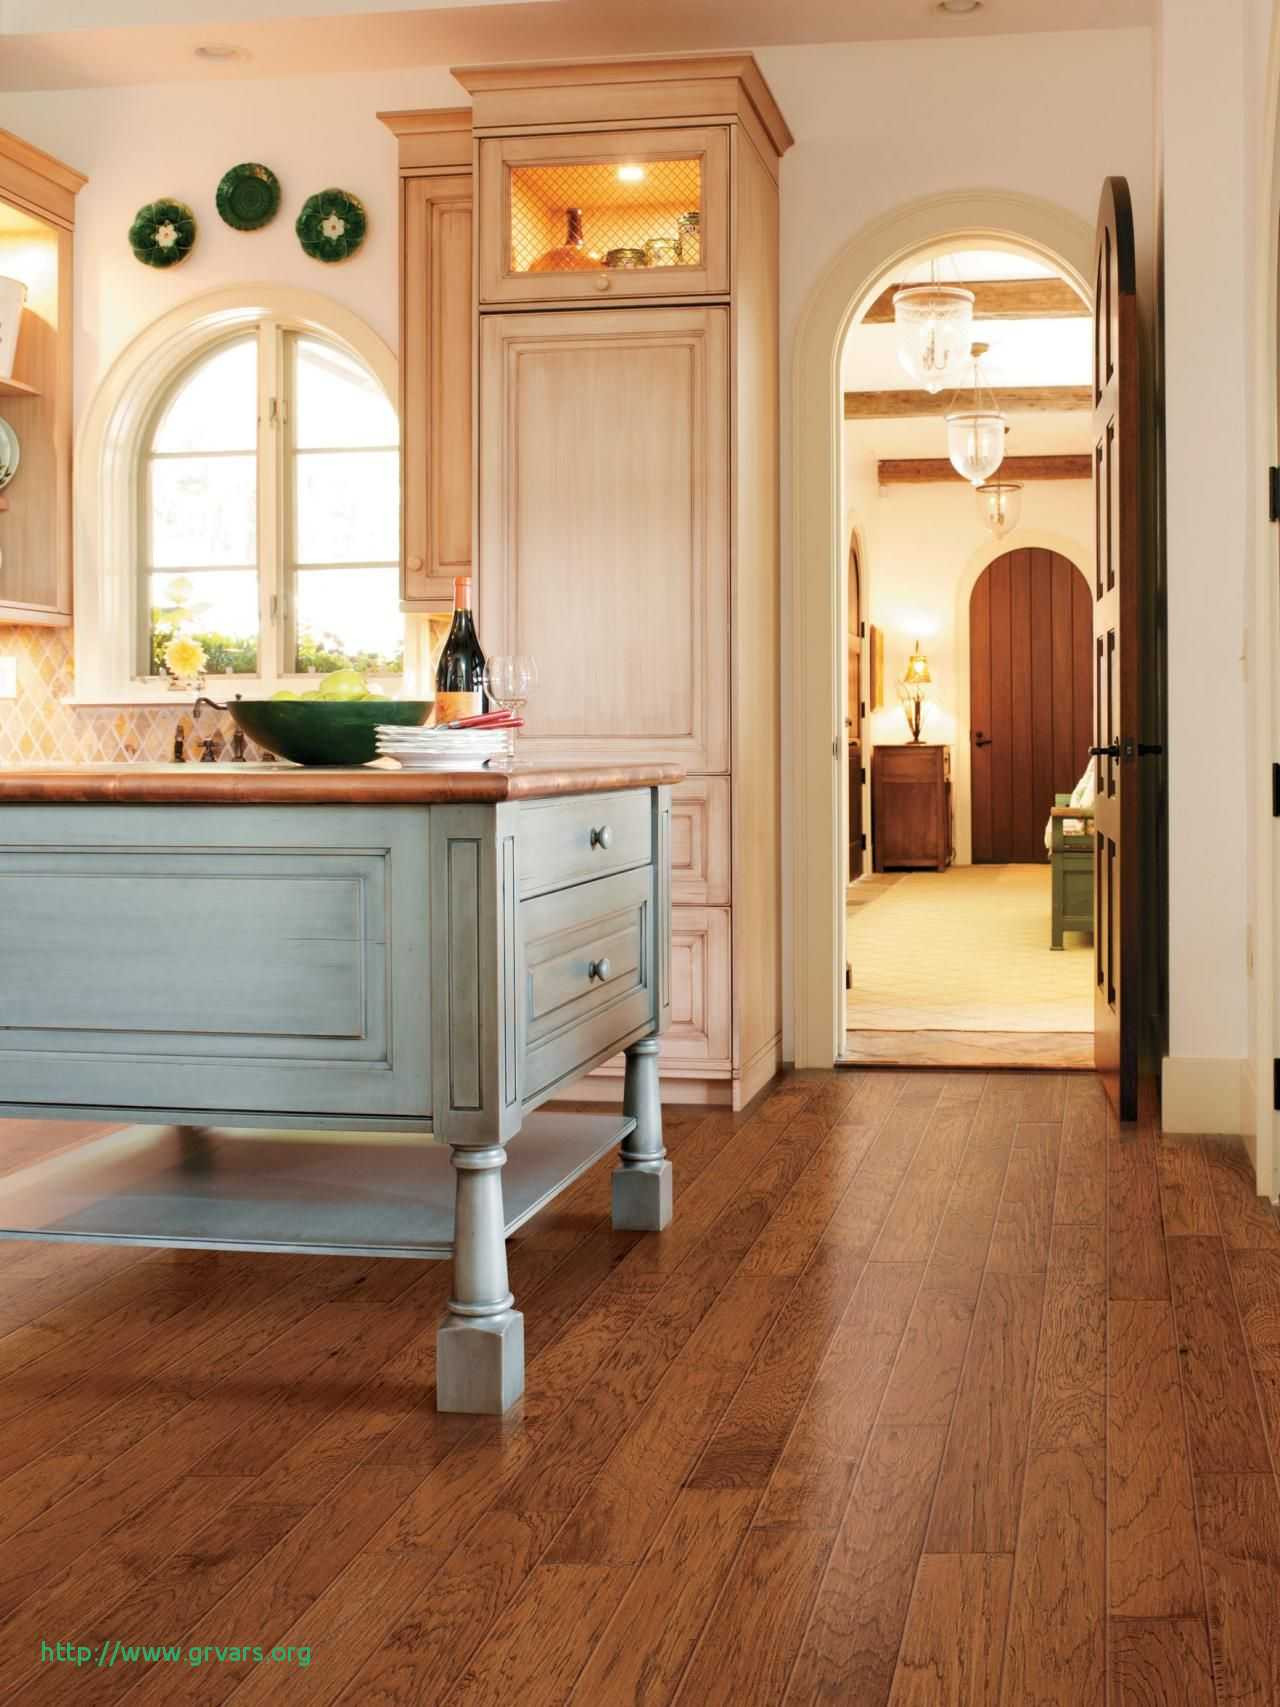 discount hardwood flooring illinois of how to choose flooring type a‰lagant 0d grace place barnegat nj mls with regard to how to choose flooring type inspirant laminate flooring in the kitchen